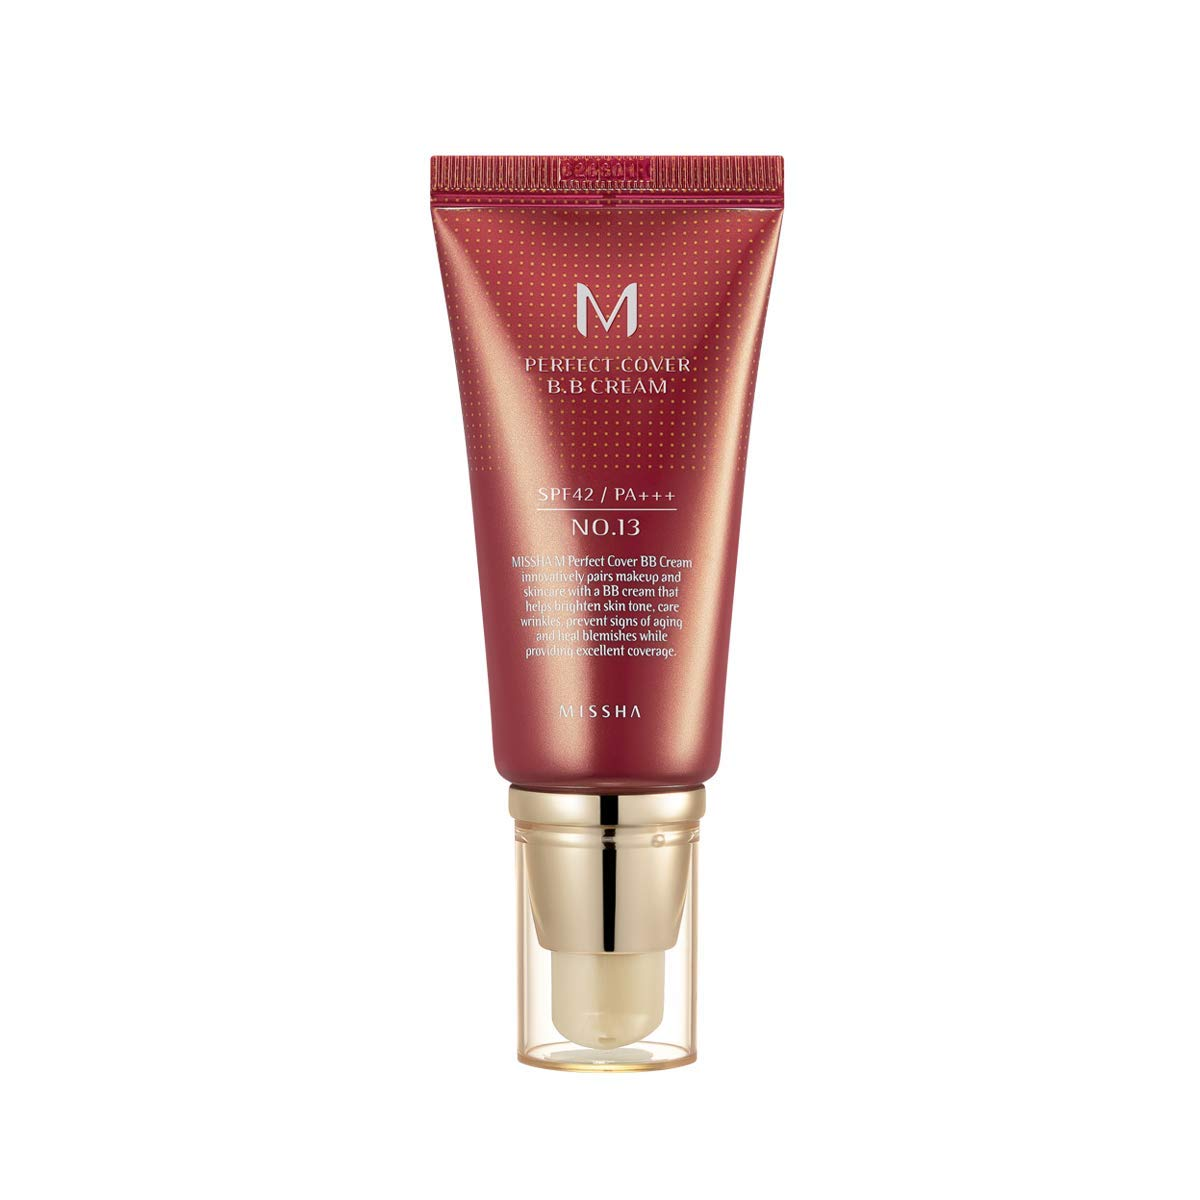 MISSHA M PERFECT COVER BB CREAM #13 SPF 42 PA+++ 50ml-Lightweight, Multi-Function, High Coverage Makeup to help infuse moisture for firmer-looking skin with reduction in appearance of fine lines